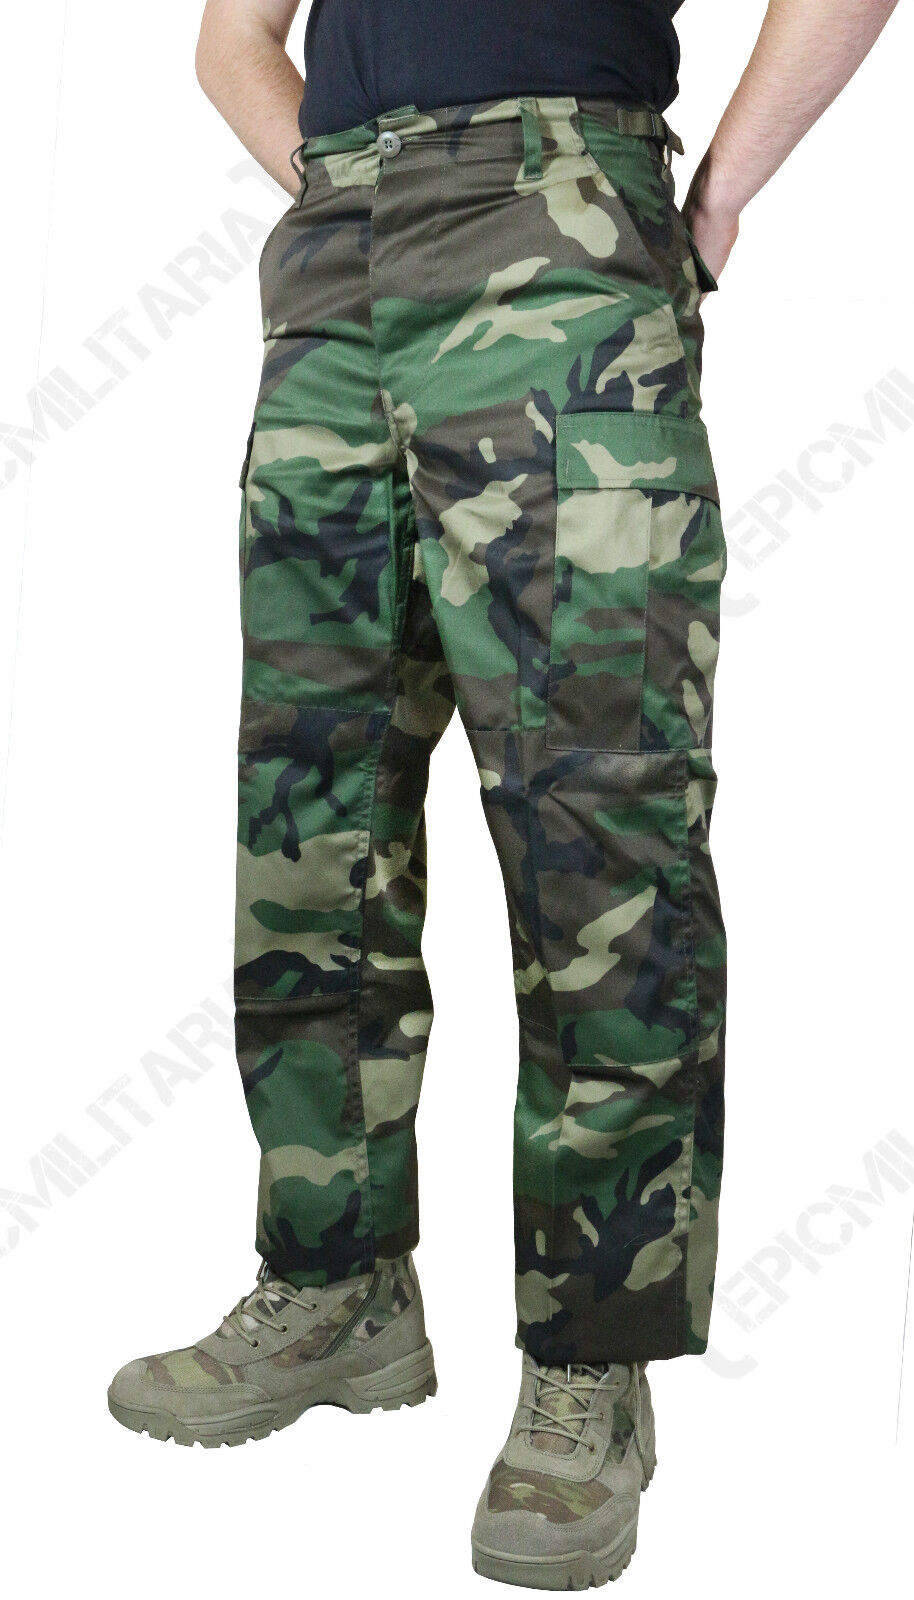 US BDU Woodland Camouflage Combat Trousers - All Sizes Military Camouflage Pants